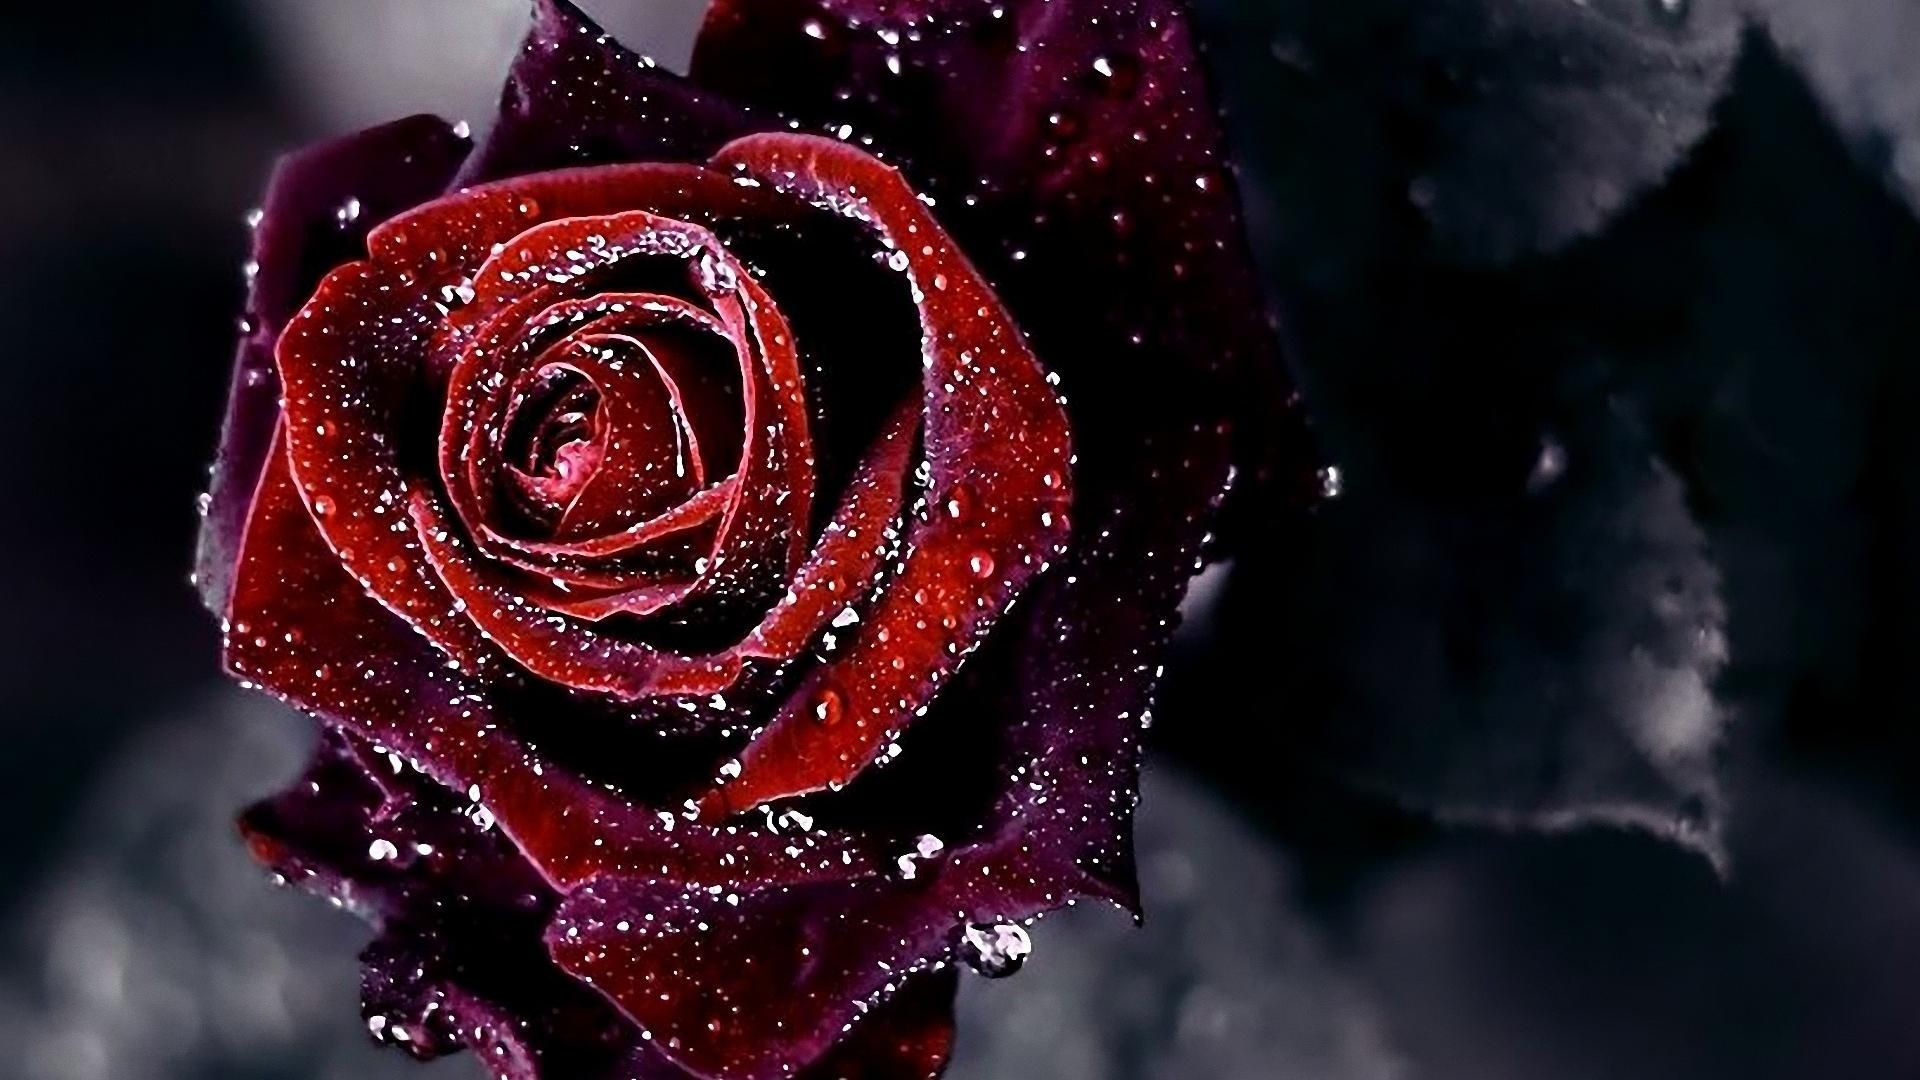 Res: 1920x1080, Red Flowers Wallpaper HD #1